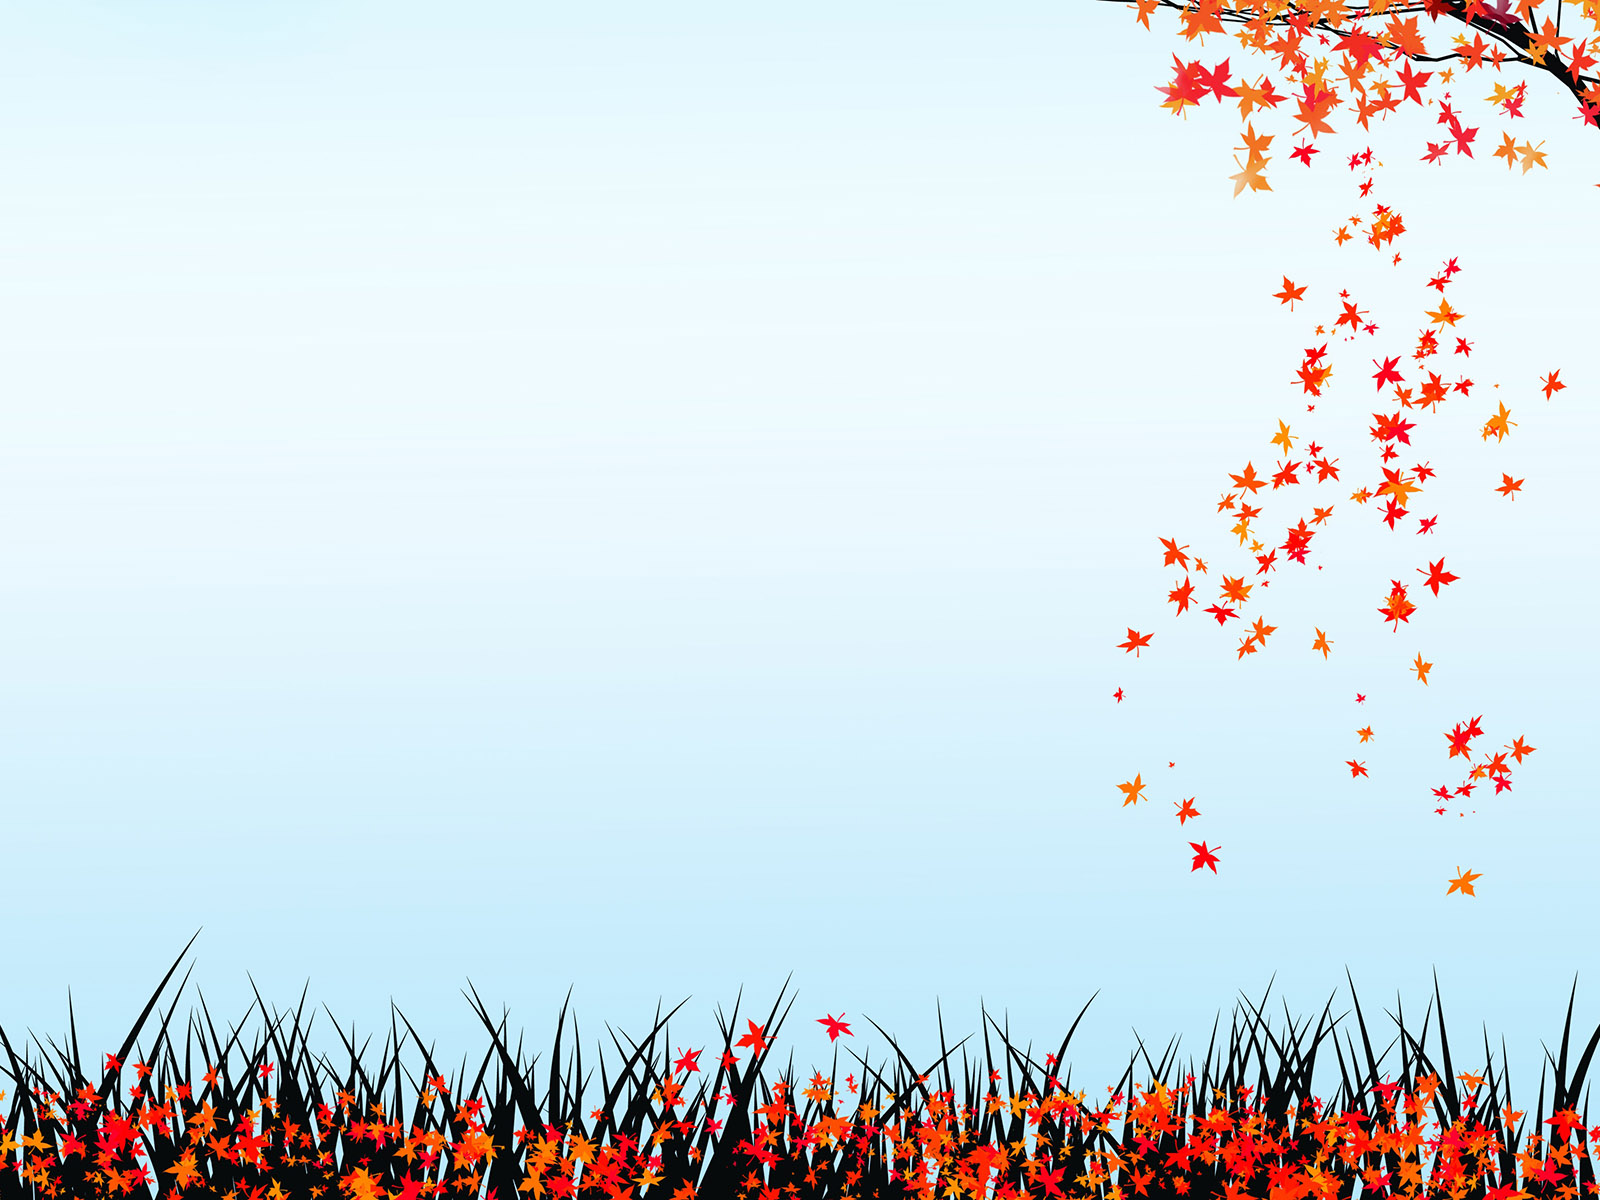 Autumn Nature Backgrounds Holiday Nature Templates